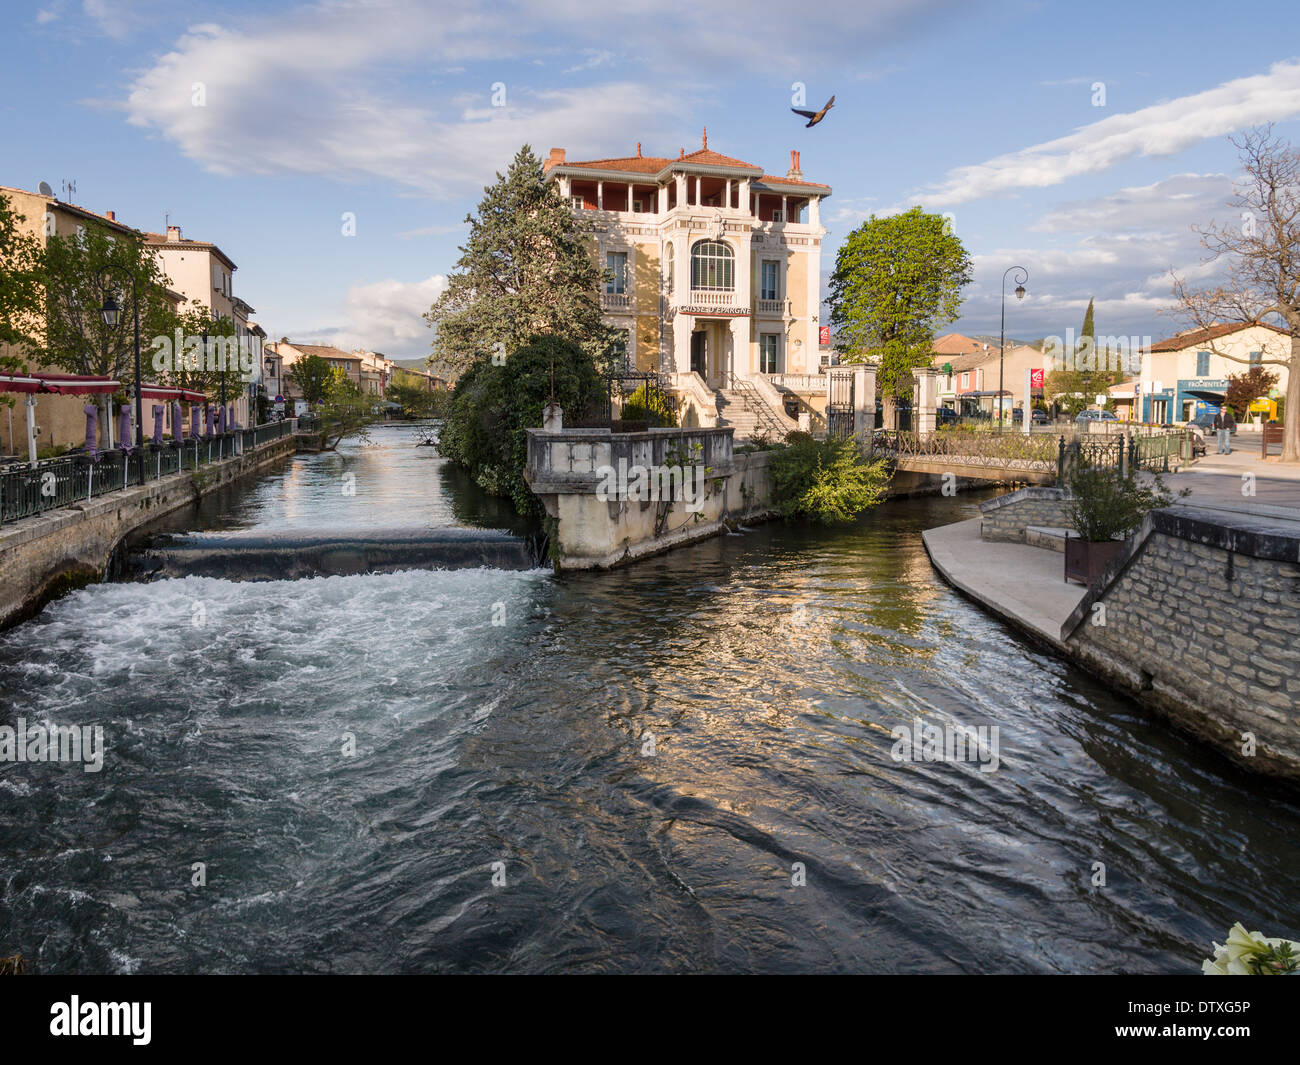 At the confluence a duck takes off. At the joining of two of the many streams in this small Provençal town stands a mansion - Stock Image